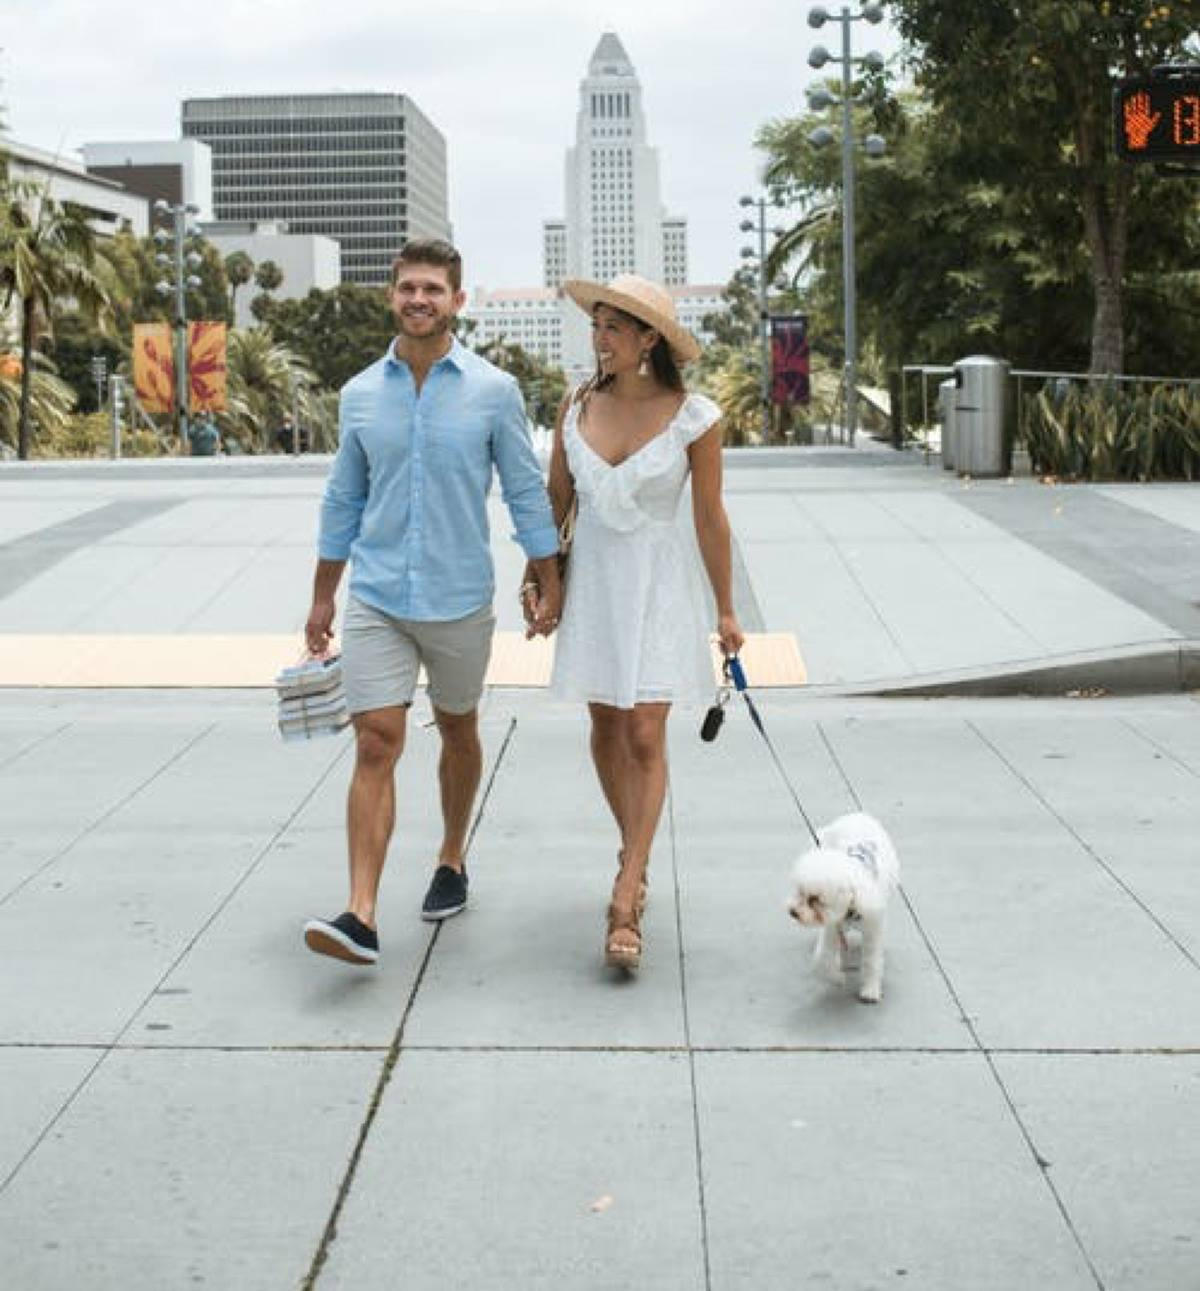 couple walking together holding hands, woman is walking a dog on a leash